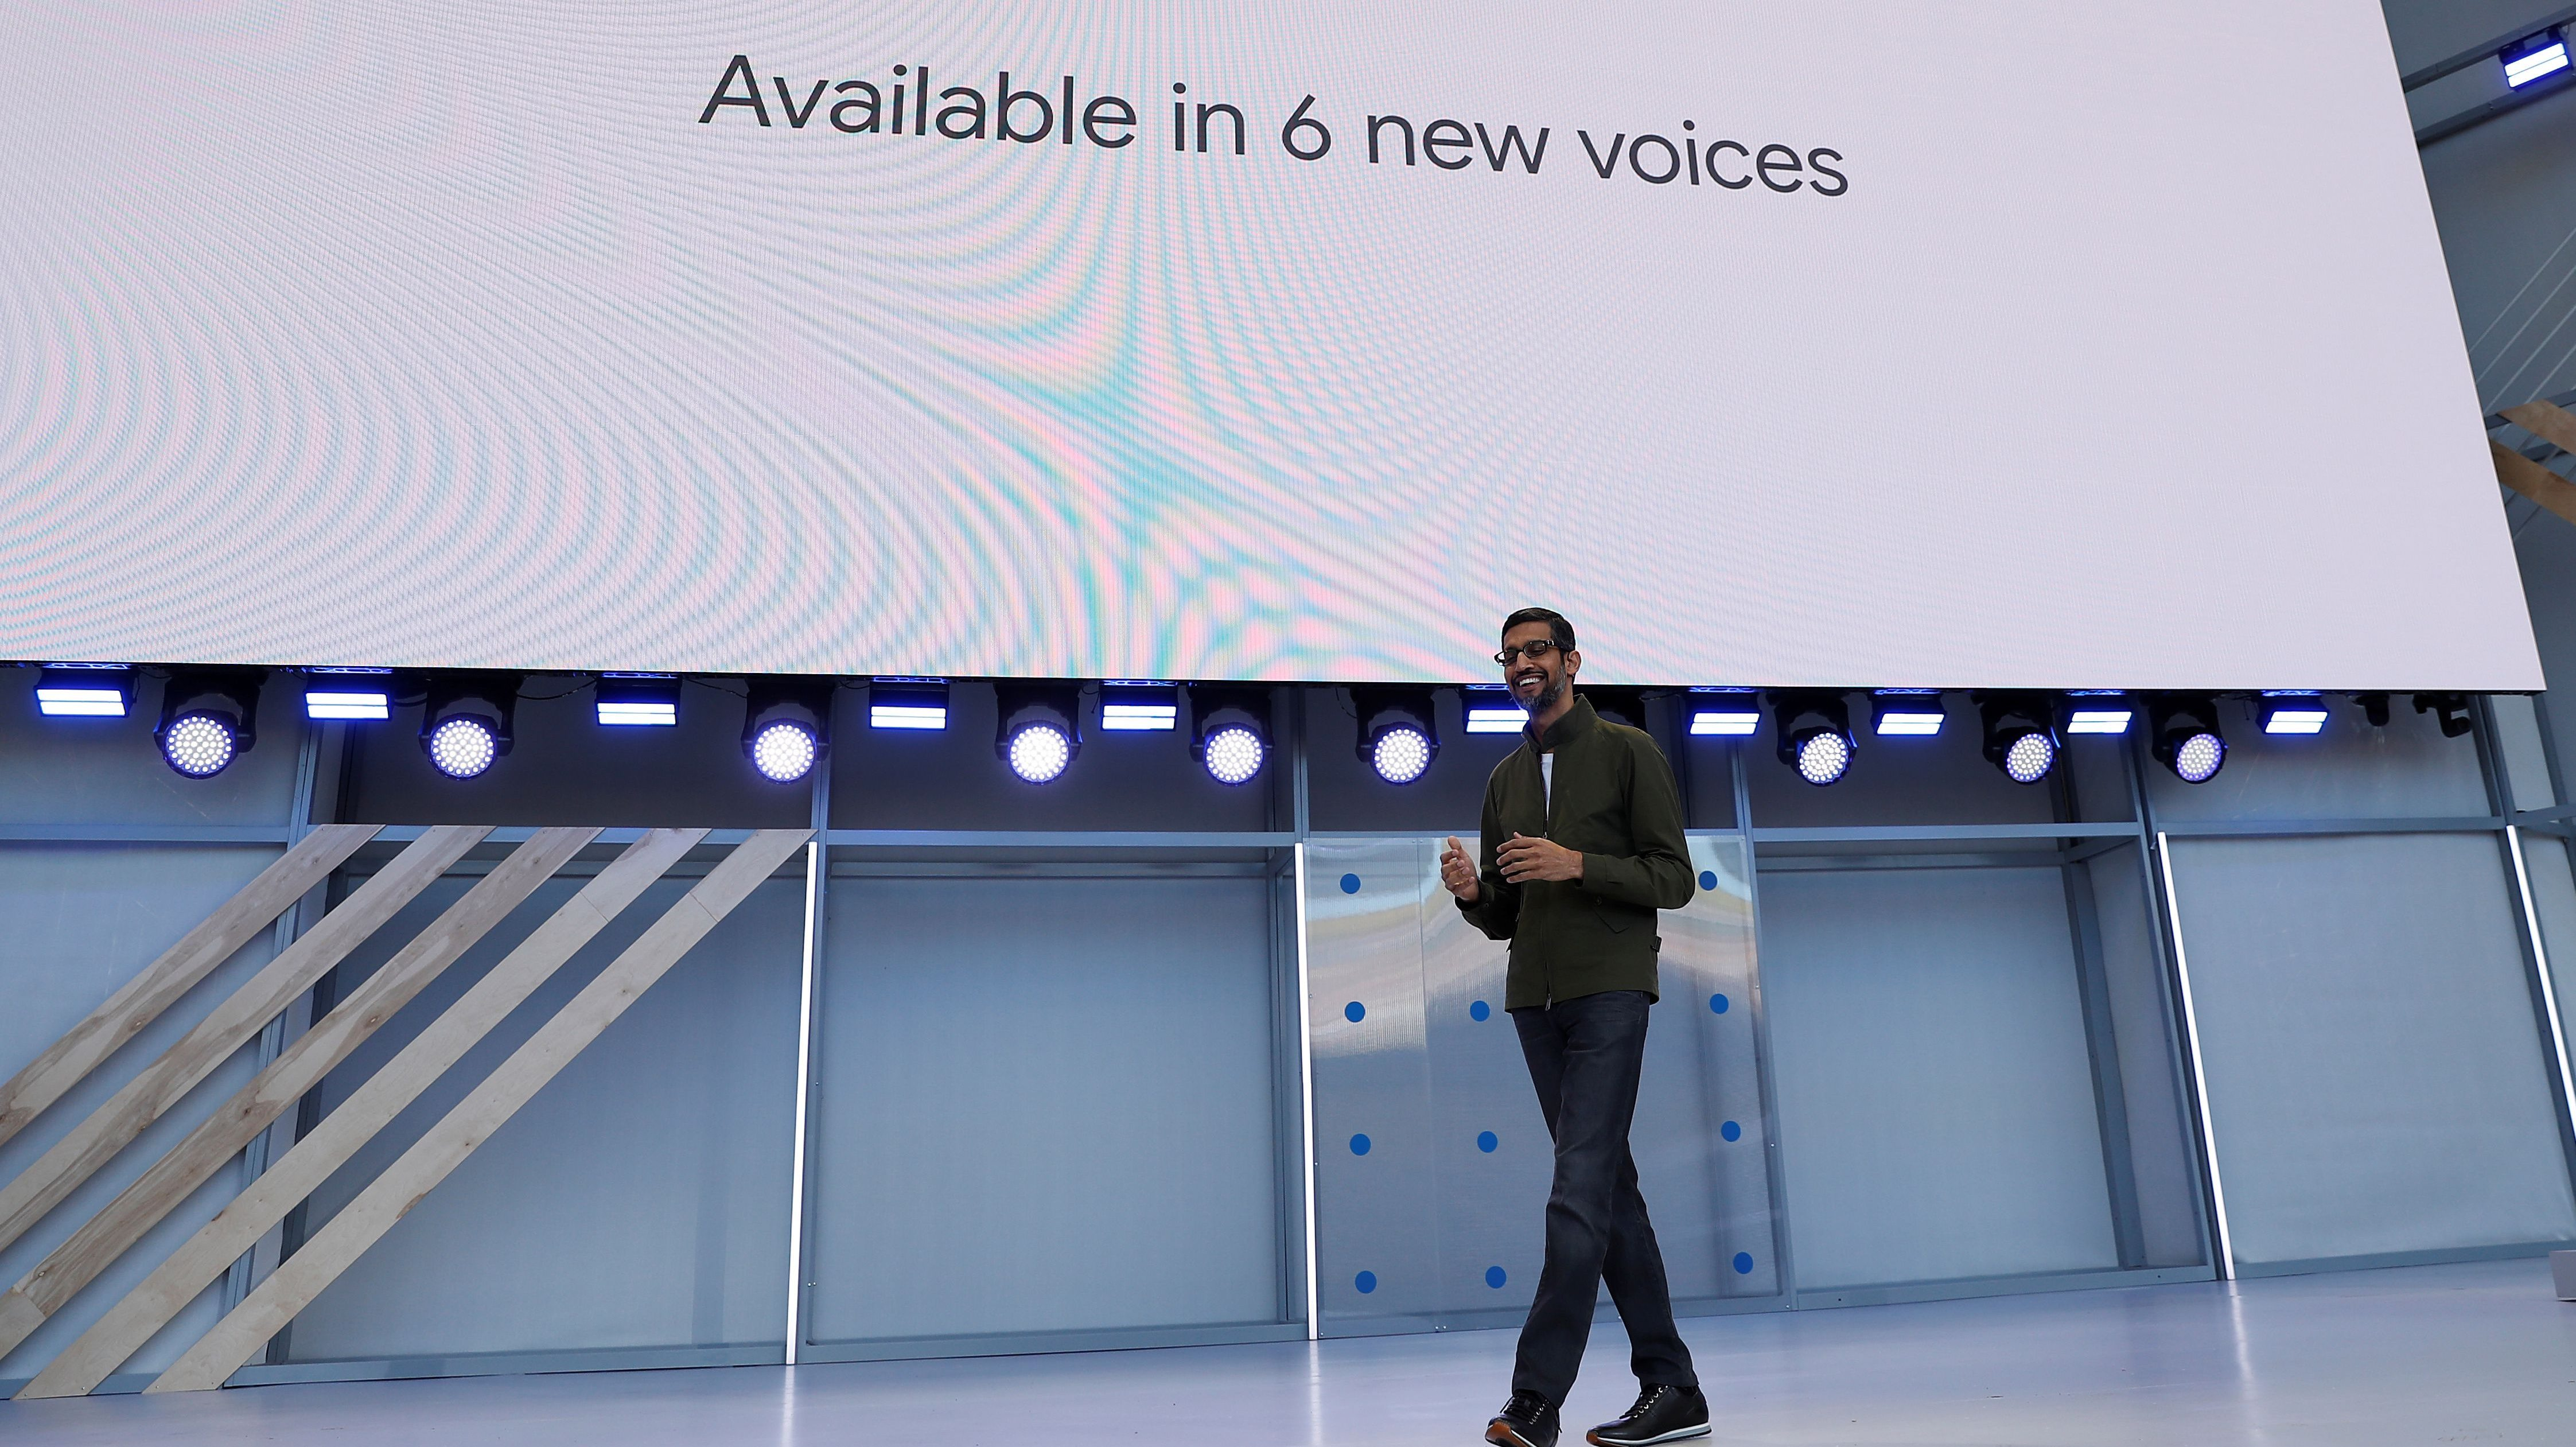 Google CEO Sundar Pichai speaks on stage during the annual Google I/O developers conference in Mountain View, California, May 8, 2018. REUTERS/Stephen Lam - RC1A08B3C450